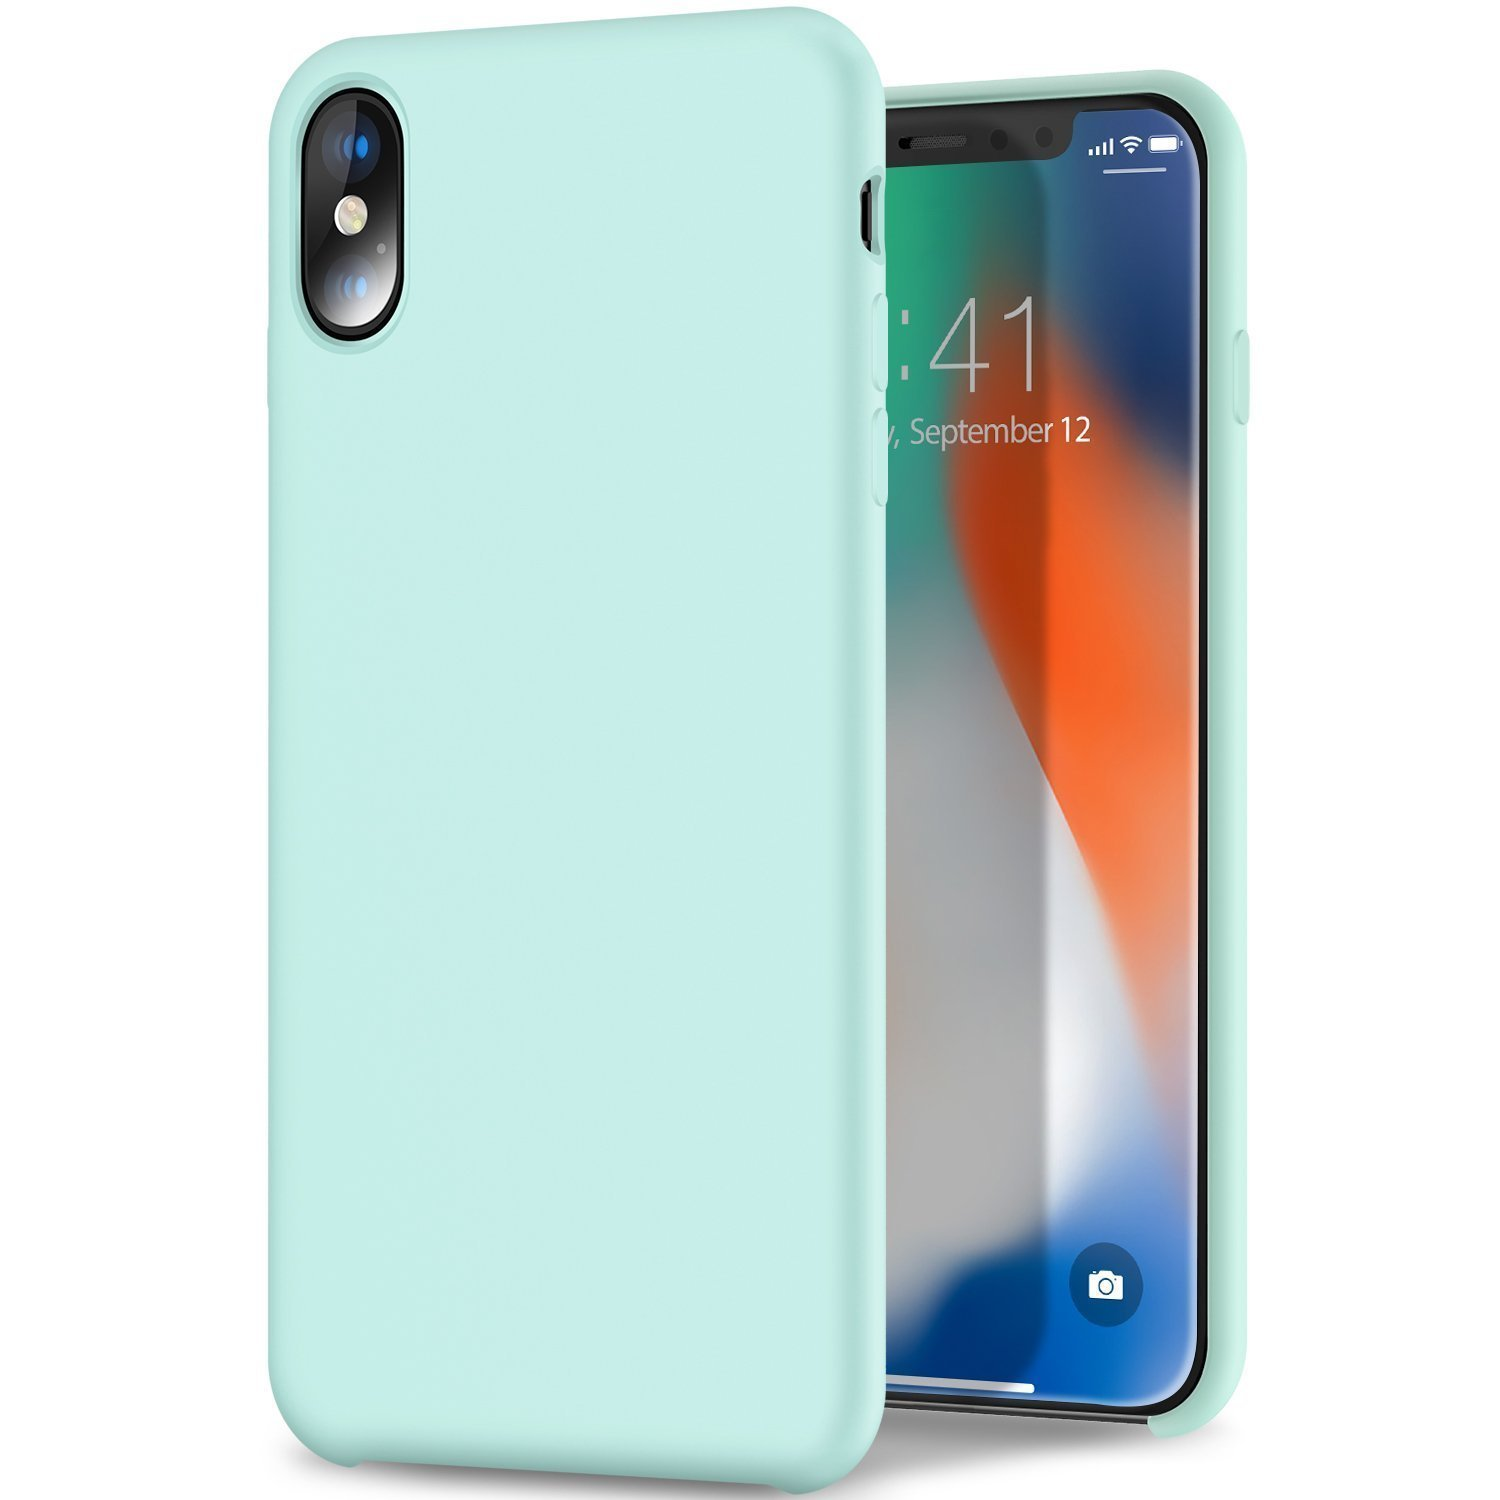 Imikoko iPhone Xs case, iPhone X case Liquid Silicone Gel Rubber Case with Soft Microfiber Cloth Lining Cushion Shockproof Bumper Cover for iPhone X (Gem Green)